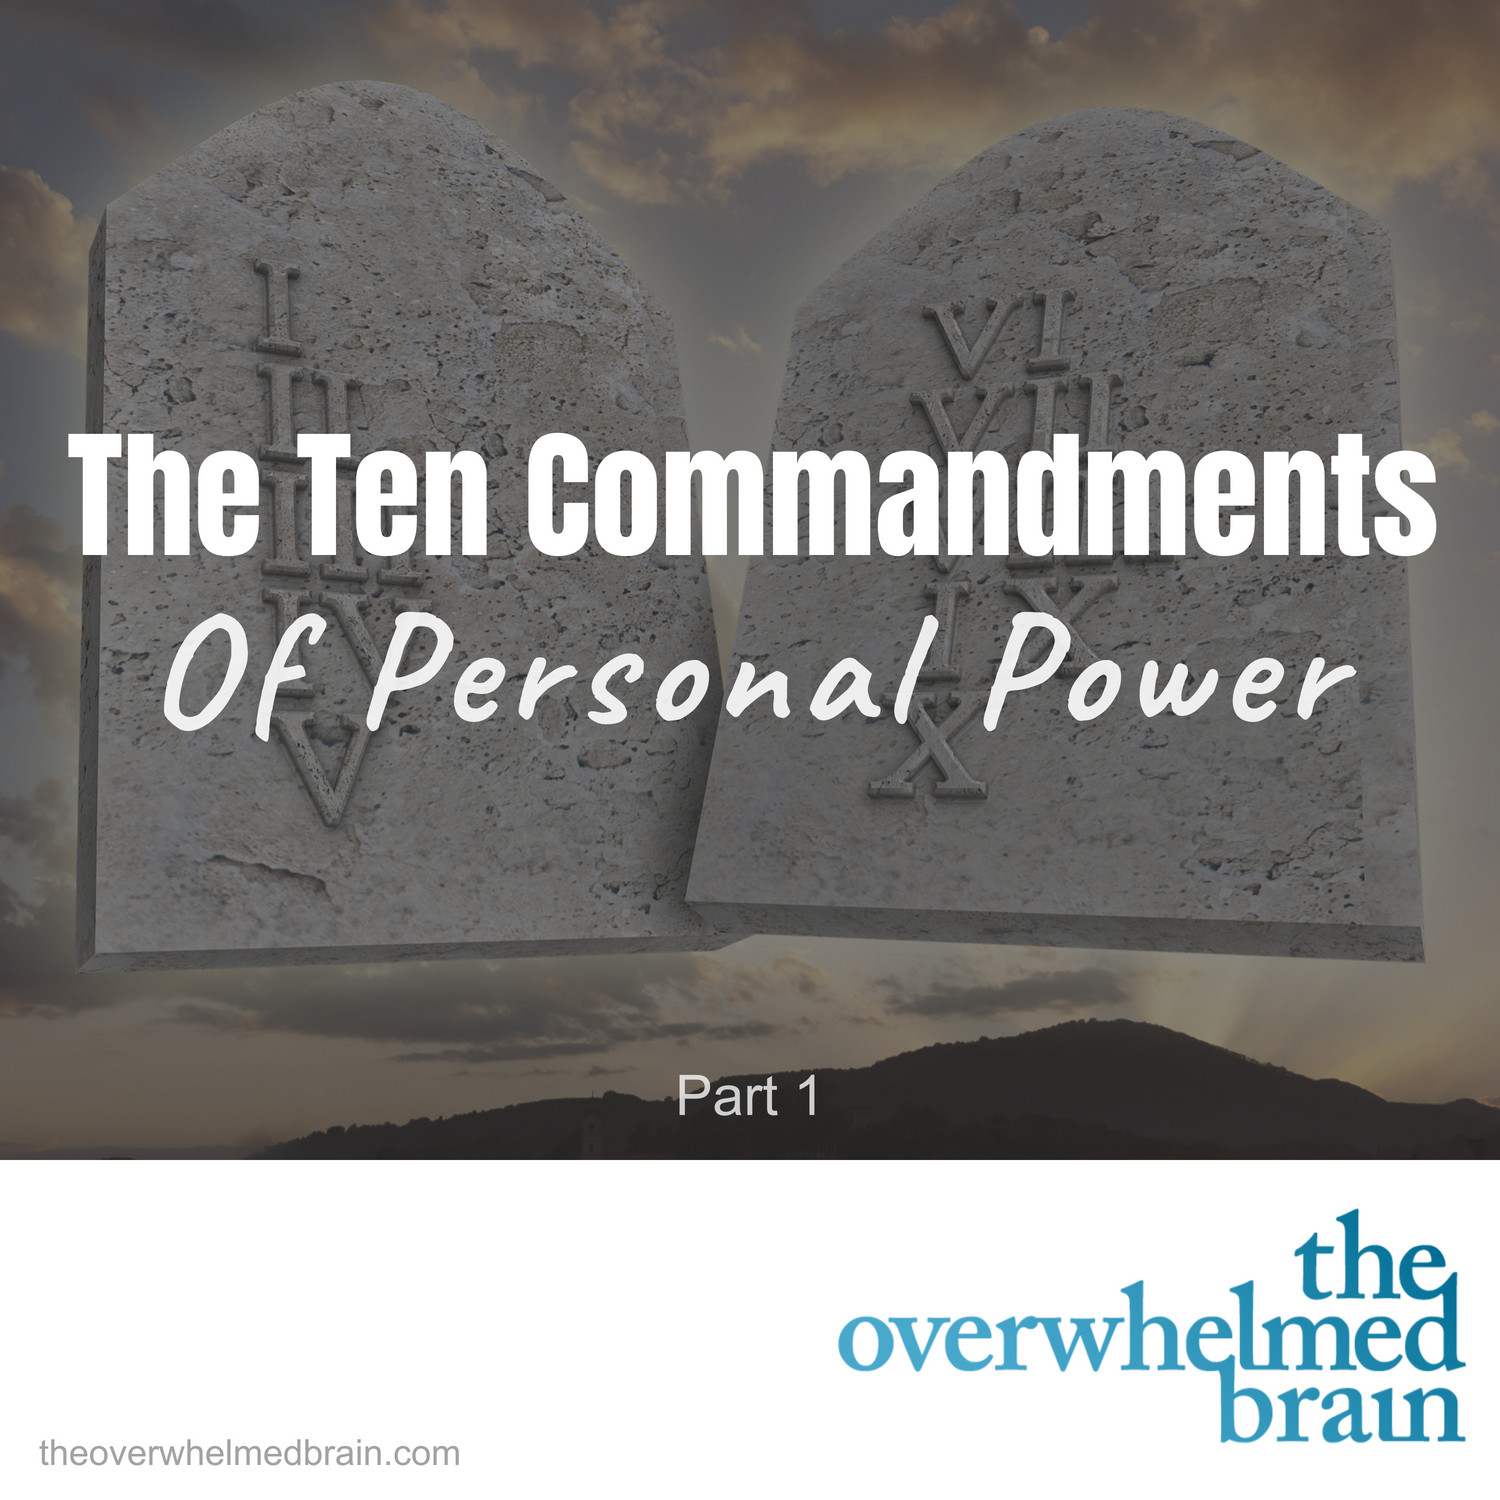 The Ten Commandments of Personal Power - Part 1